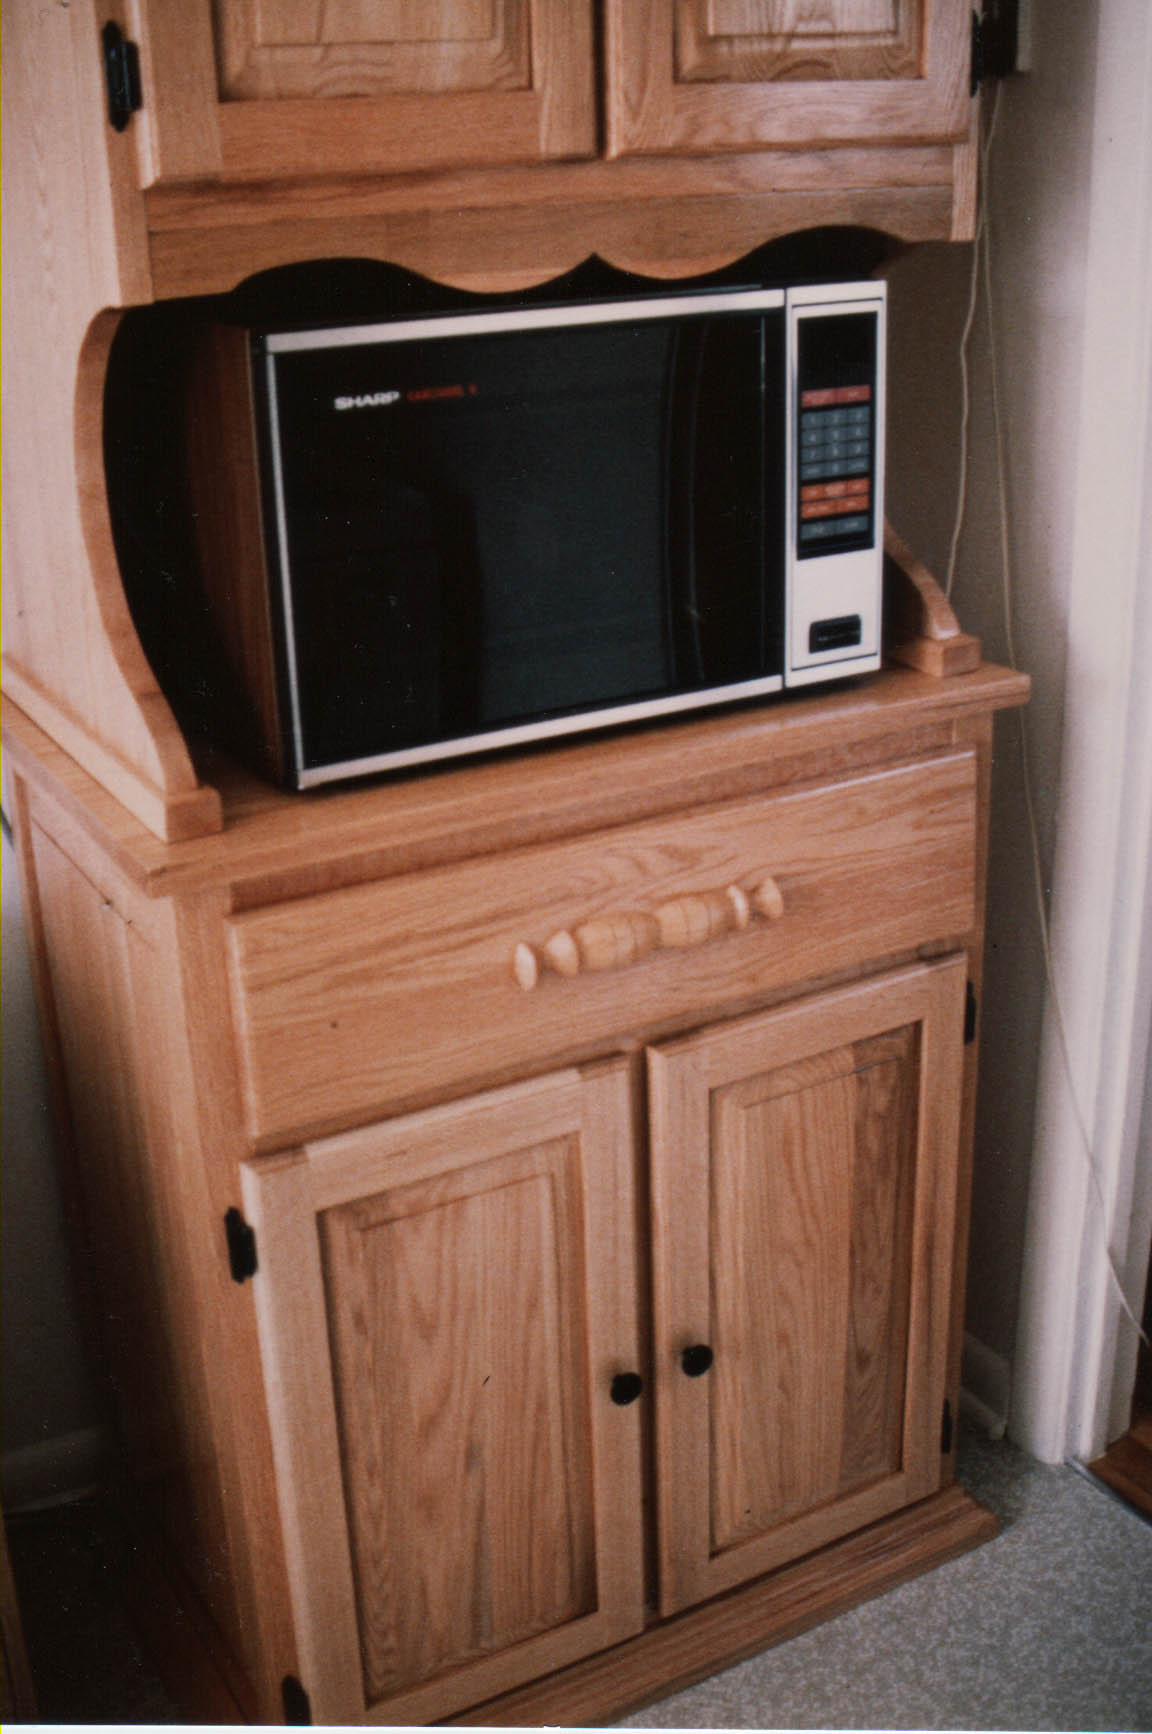 Decosee Microwave Cabinets